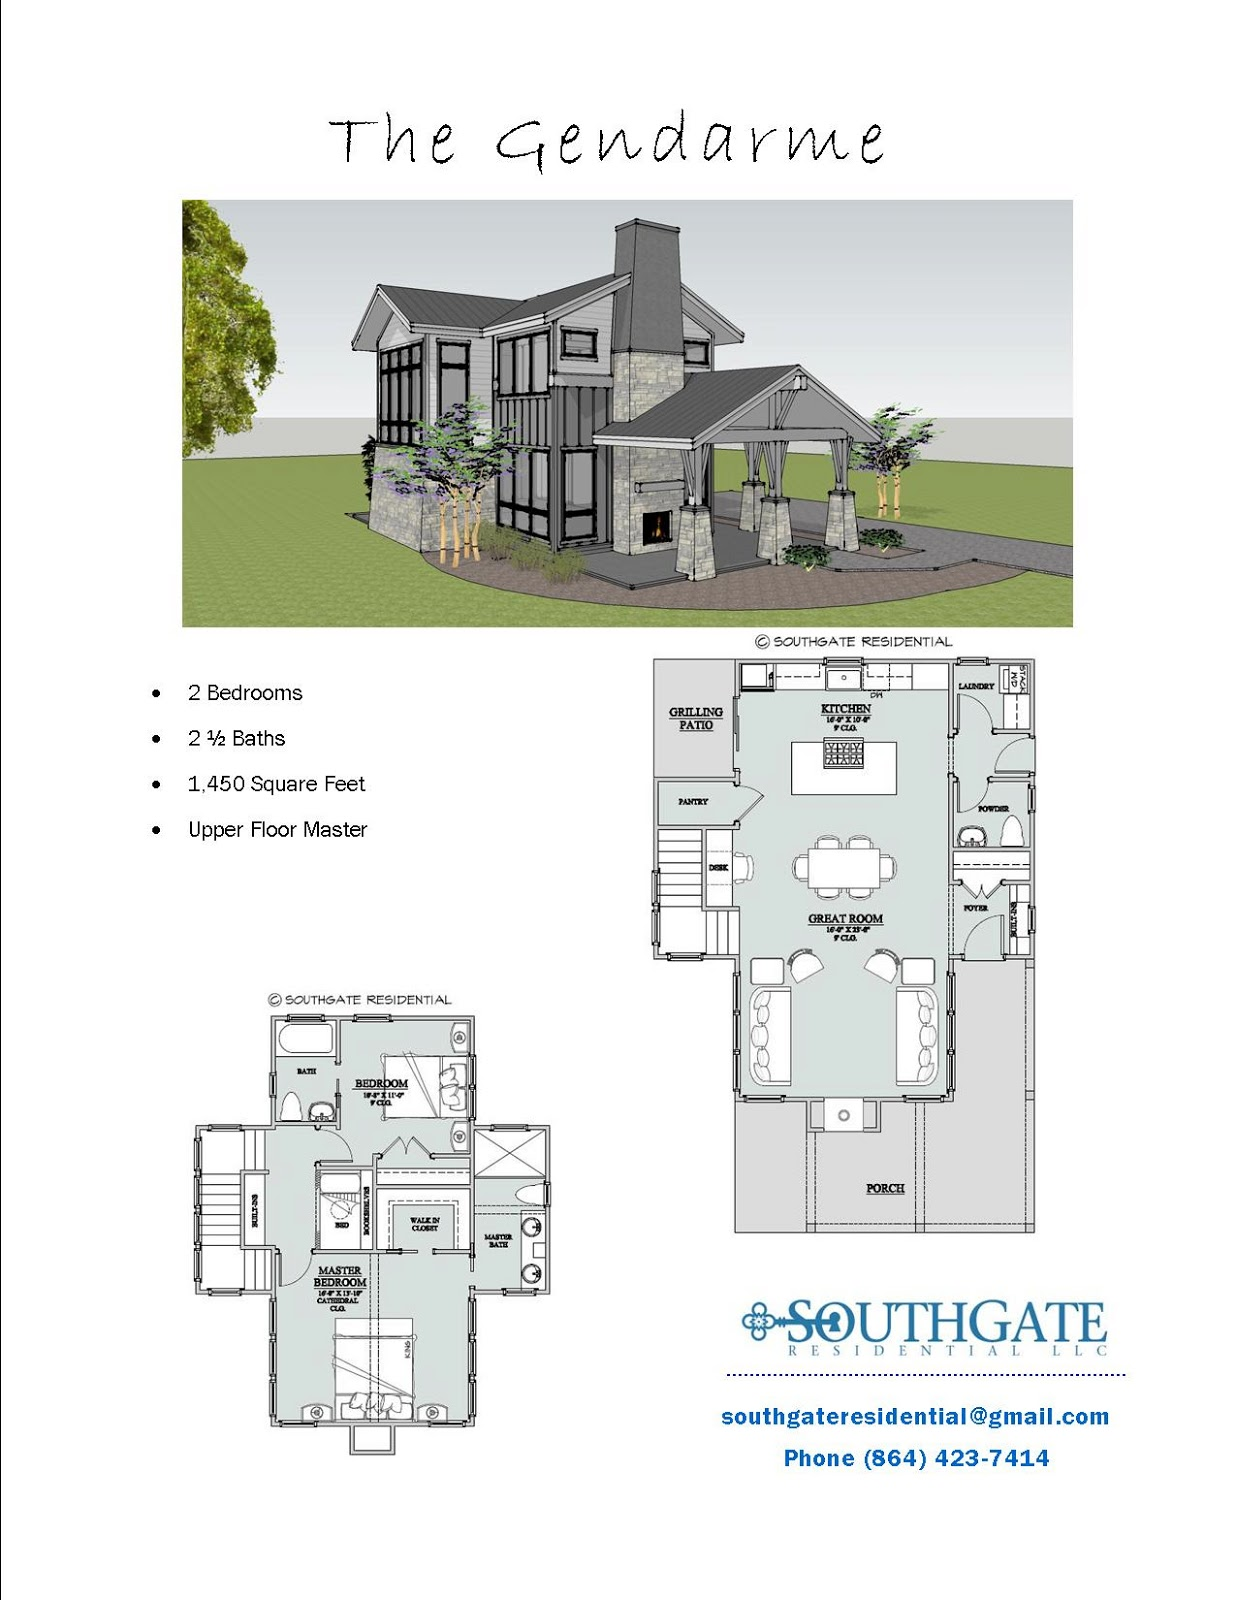 Southgate Residential Pre Designed Plans